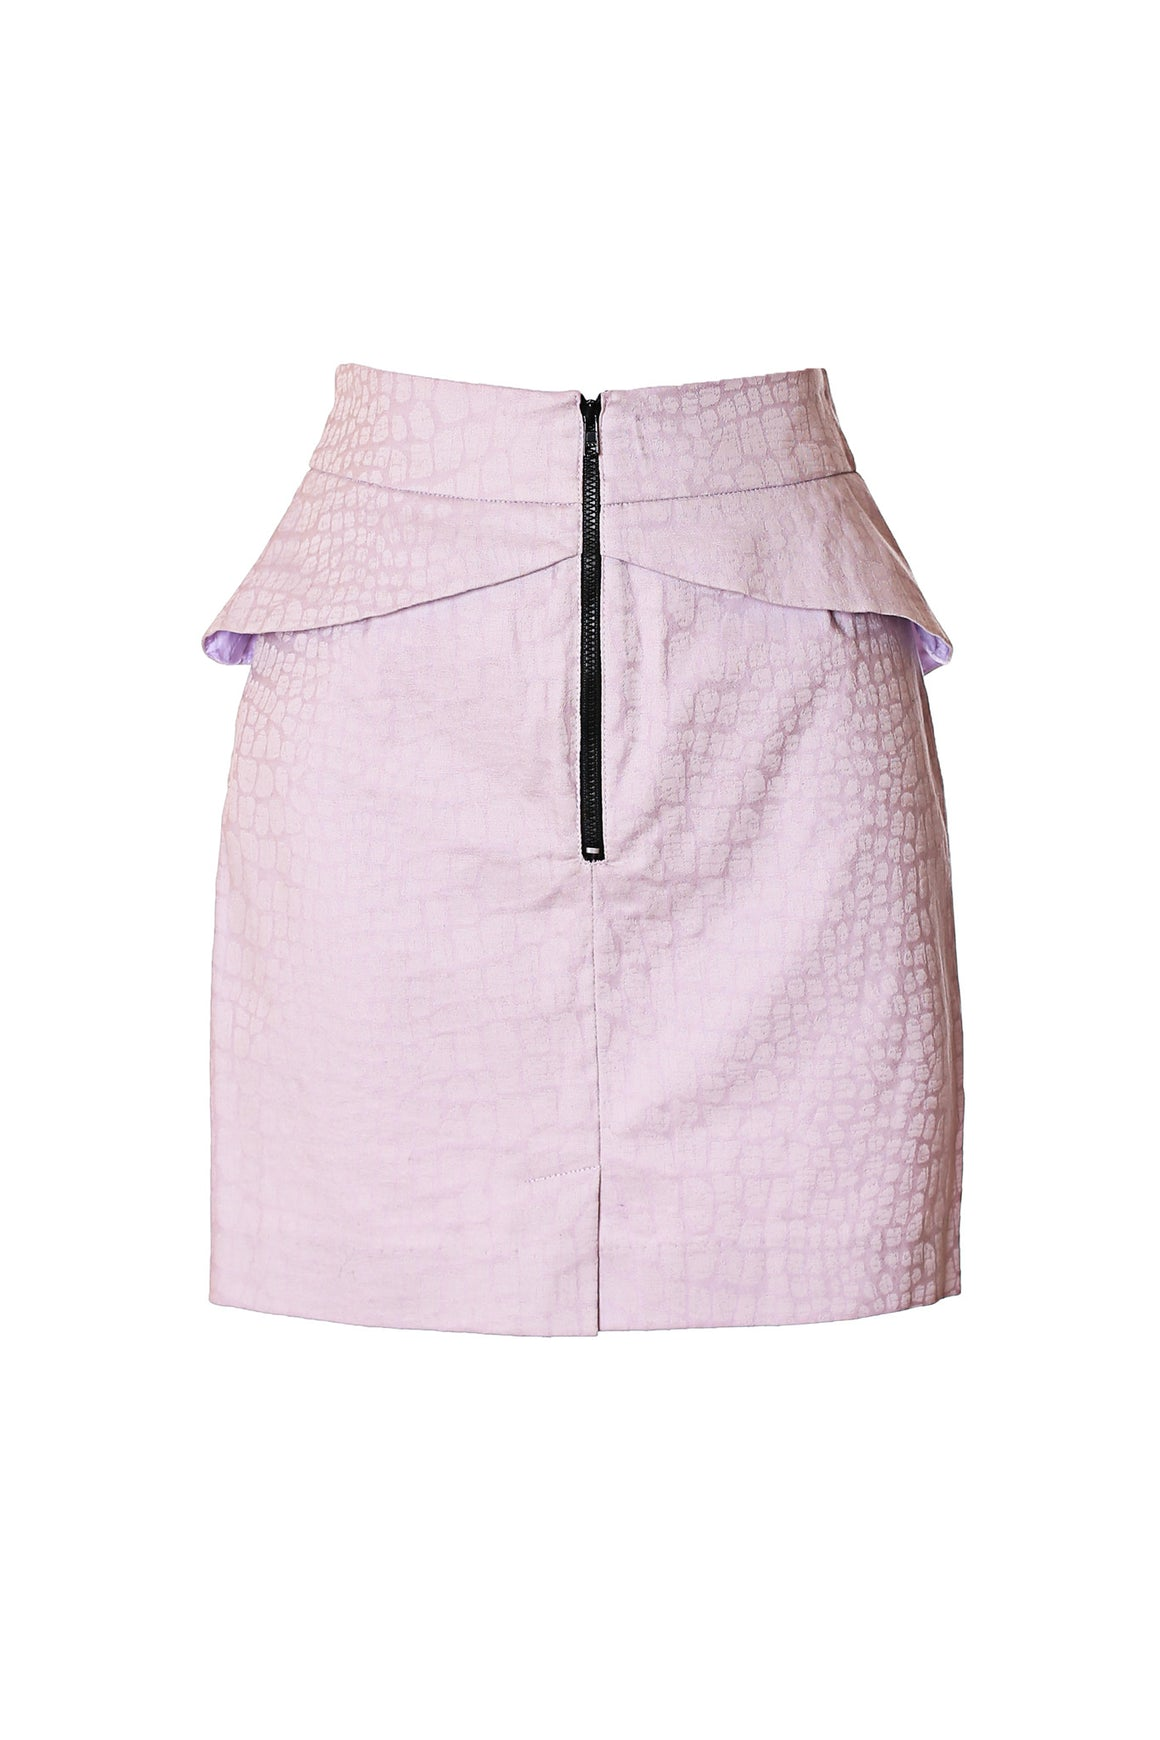 purple lavender peplum skirt